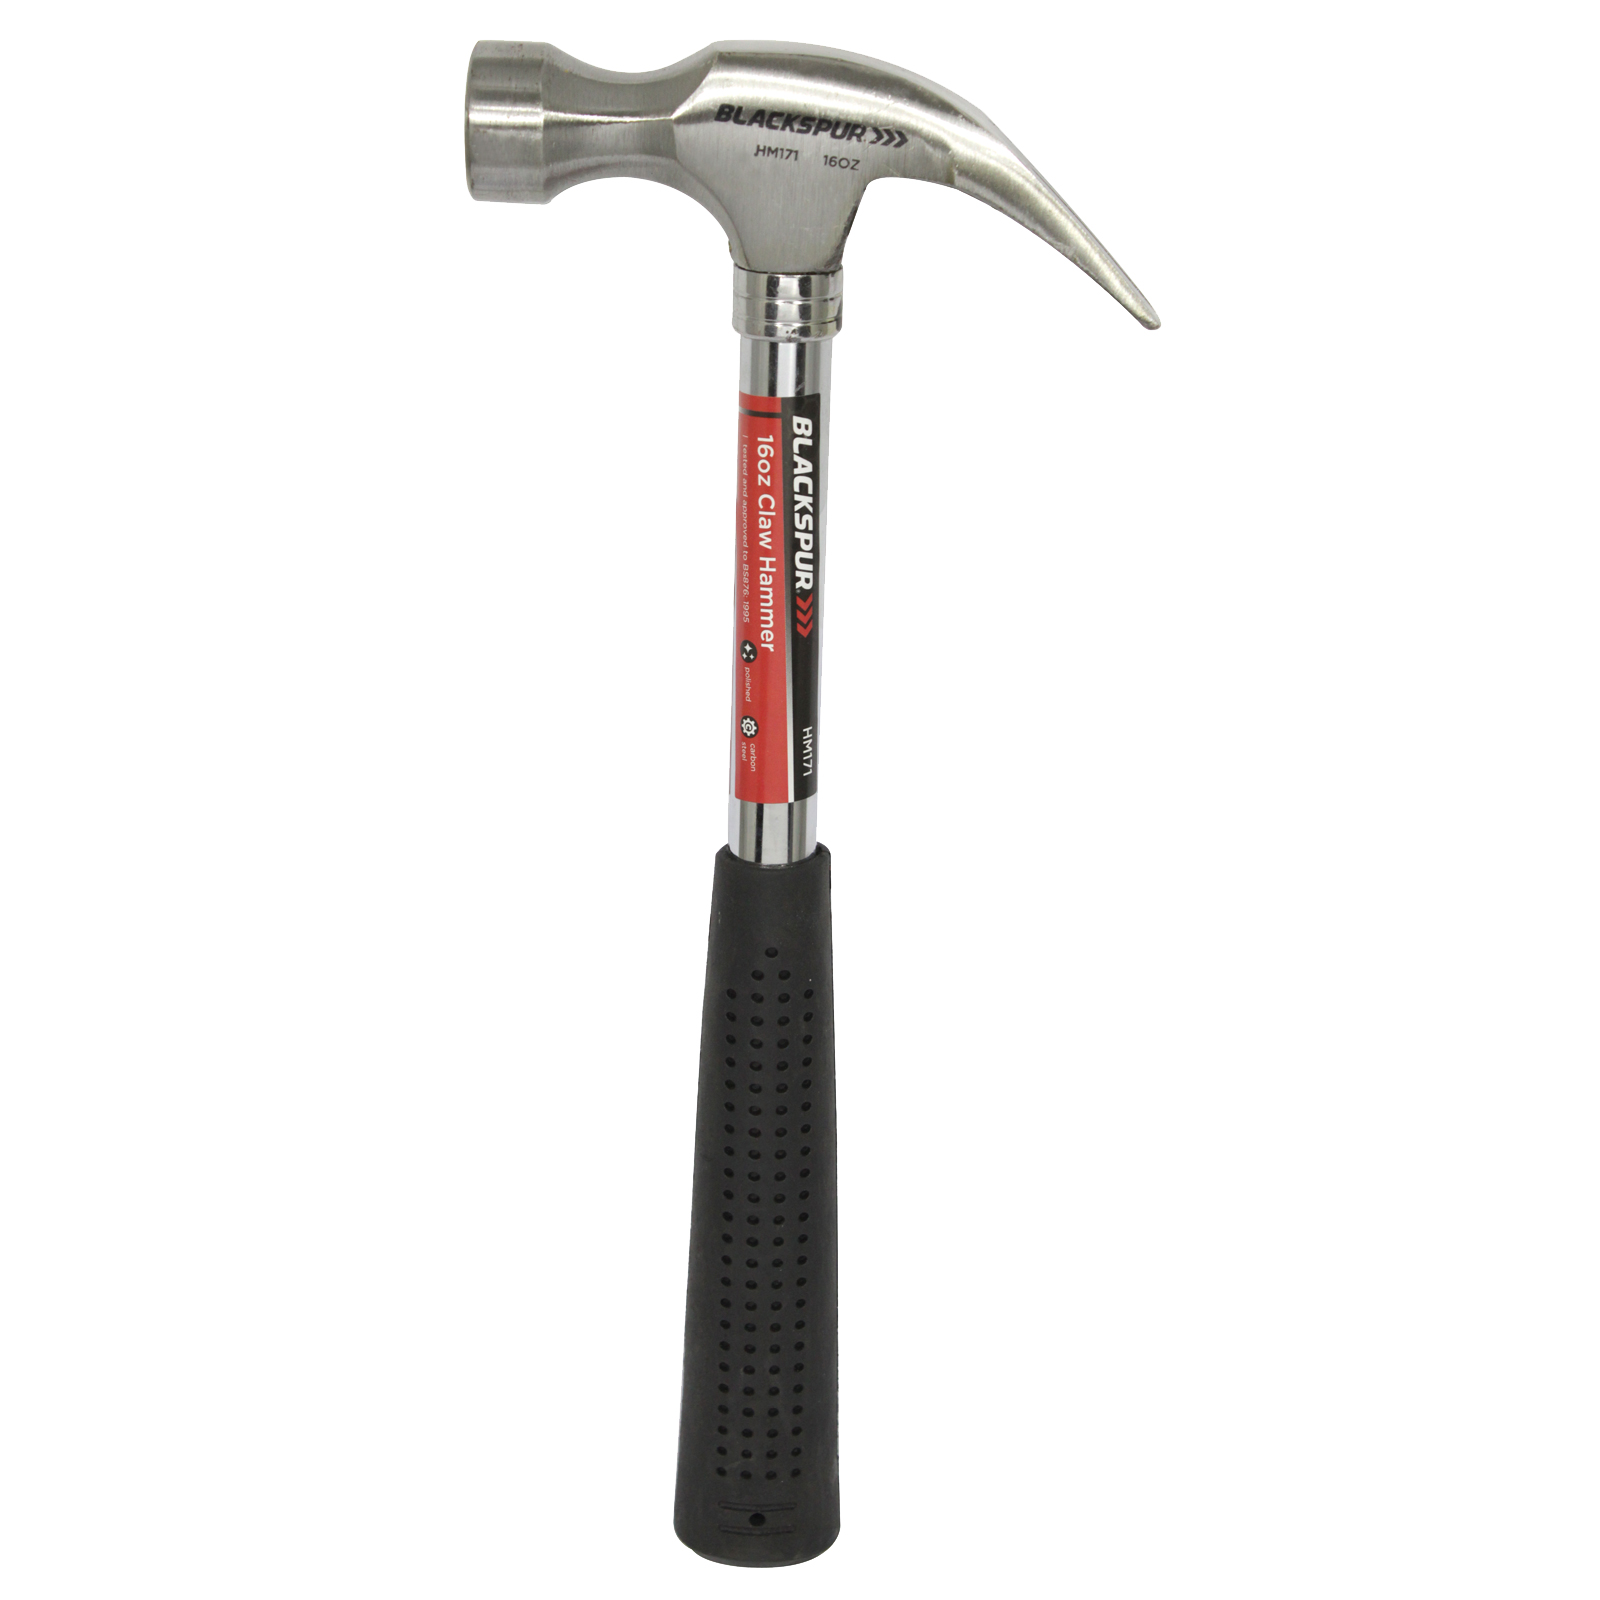 BLACKSPUR 16OZ CLAW HAMMER